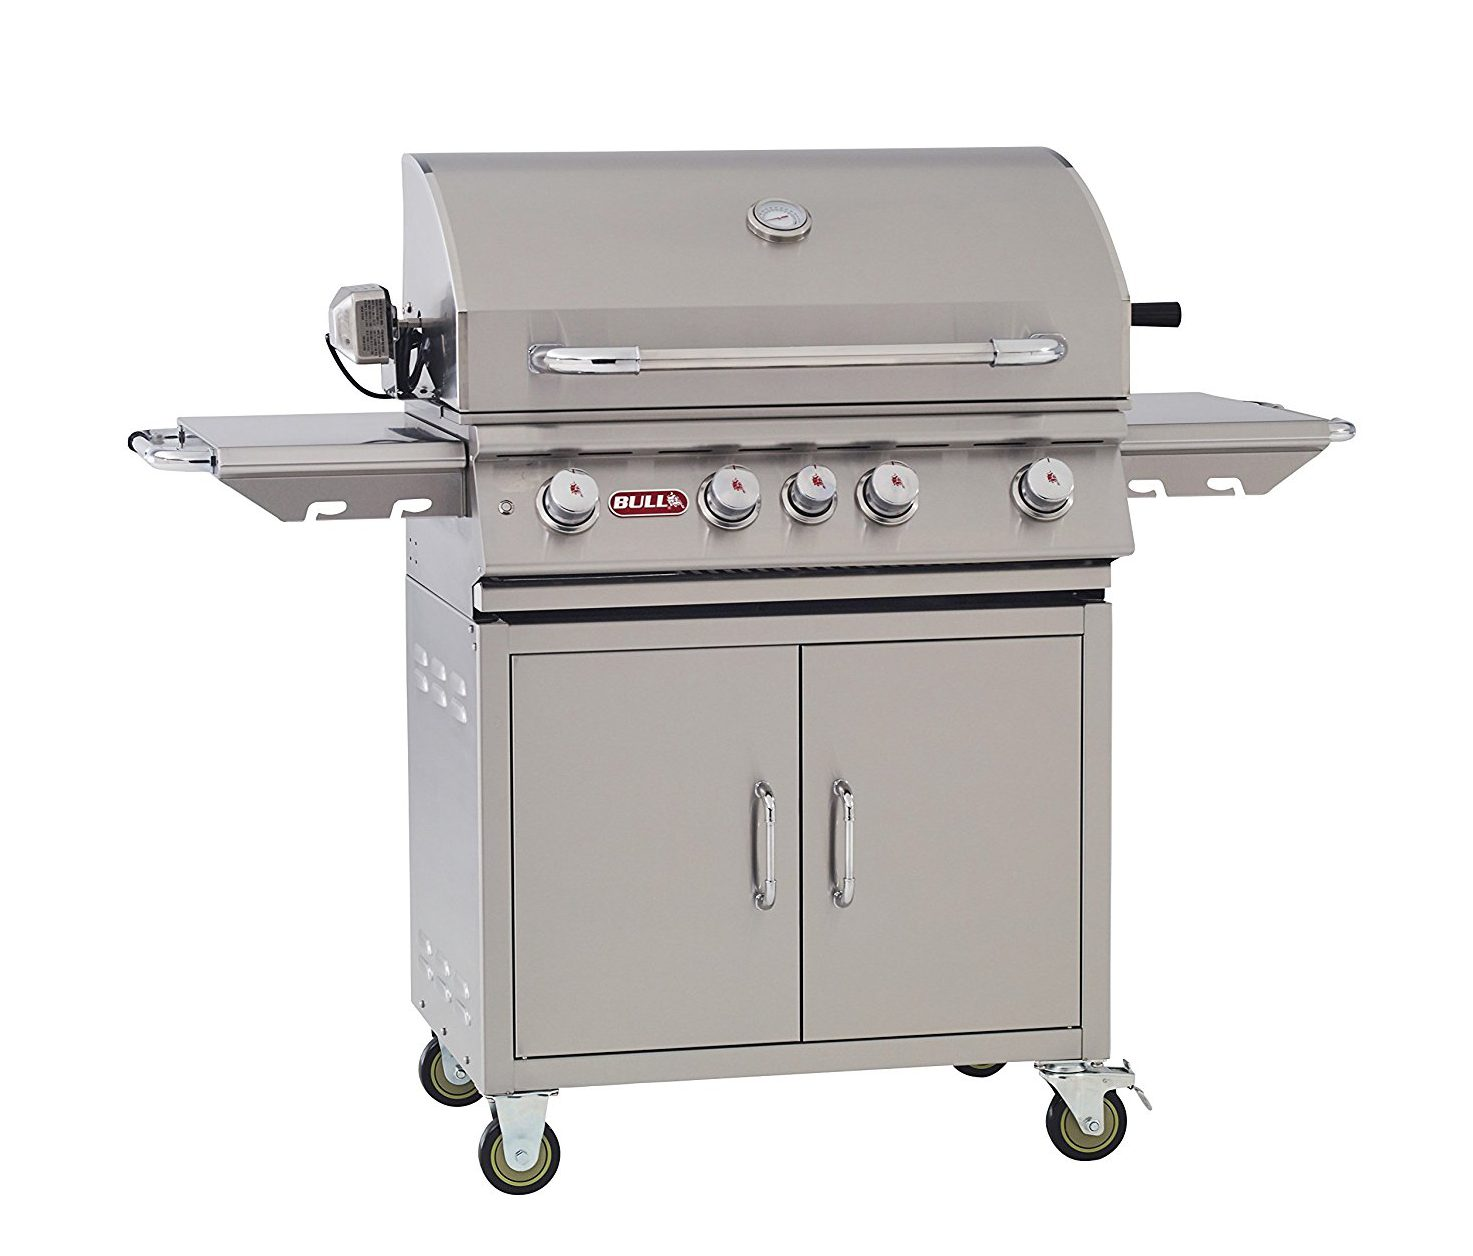 Bull Outdoor Products Angus Grill Best Gas Grills Best